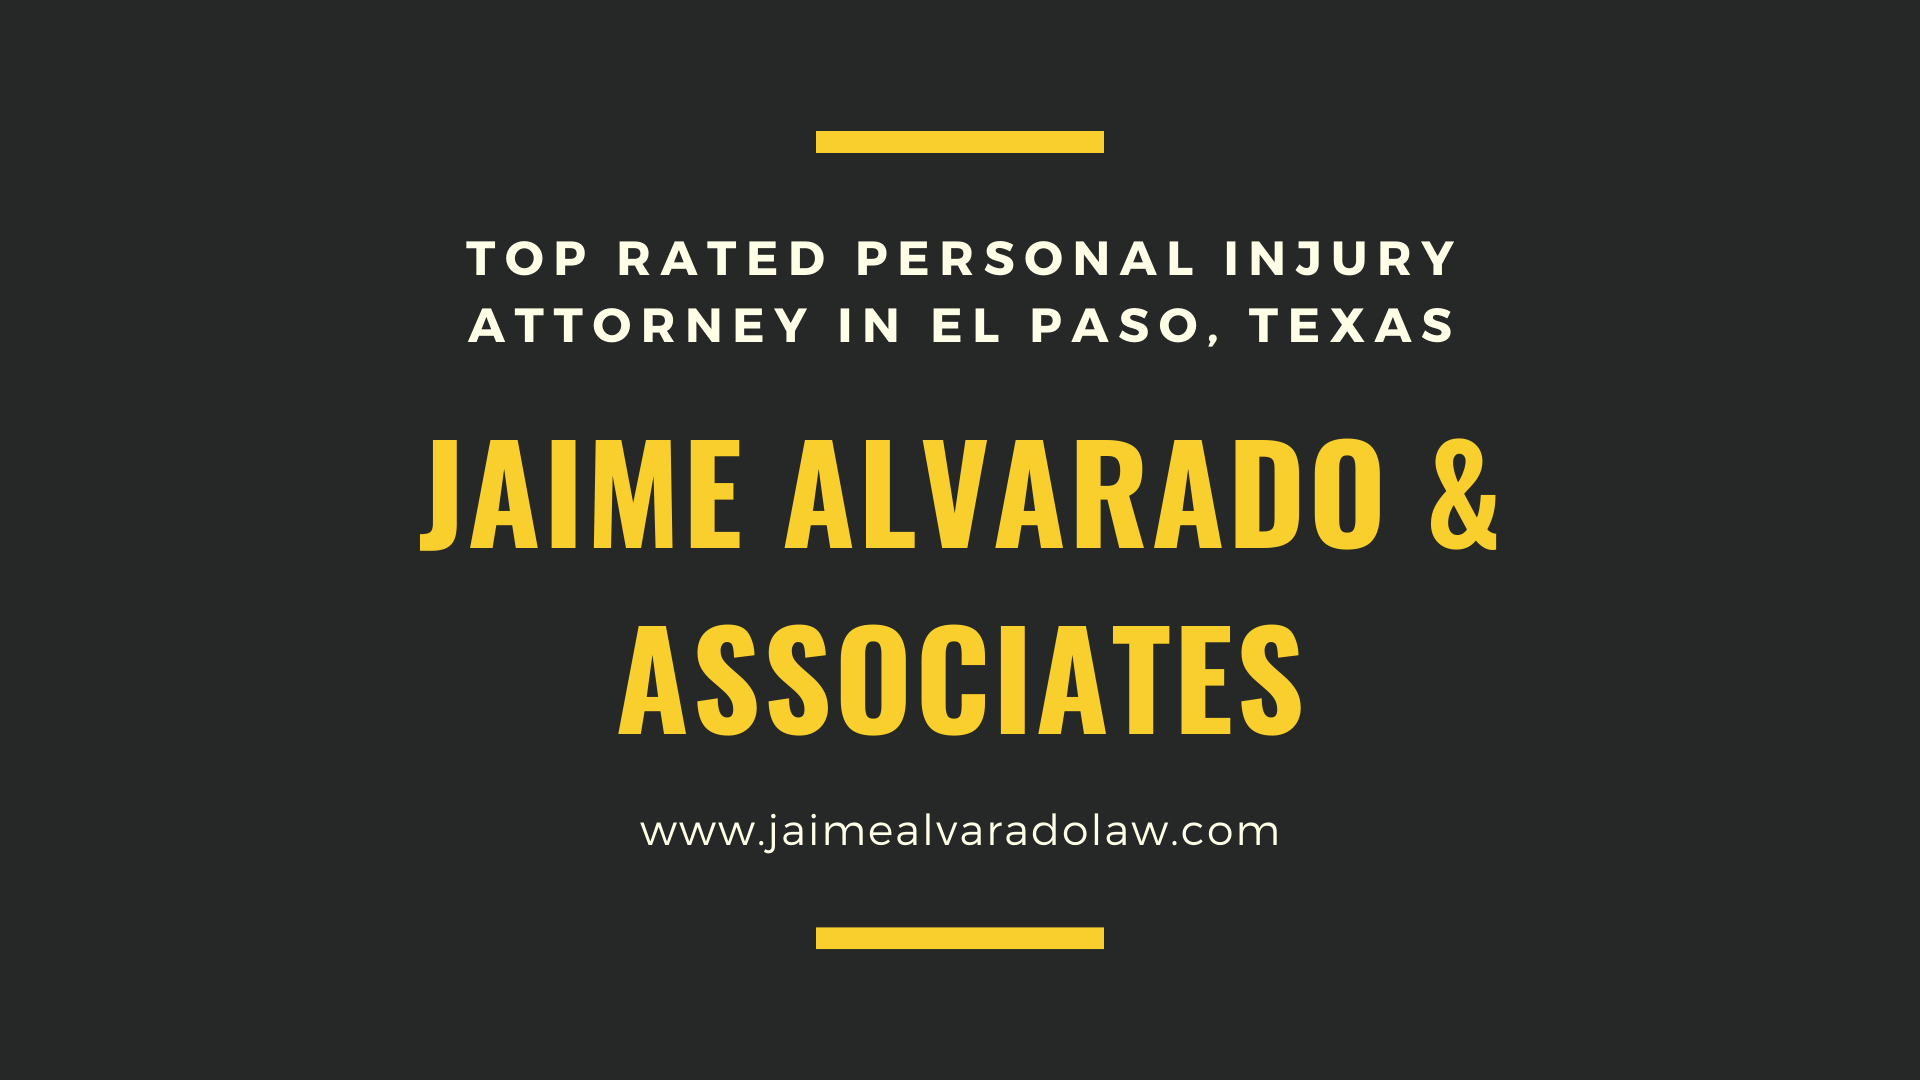 El Paso Personal Injury Attorney Personal Injury Lawyer